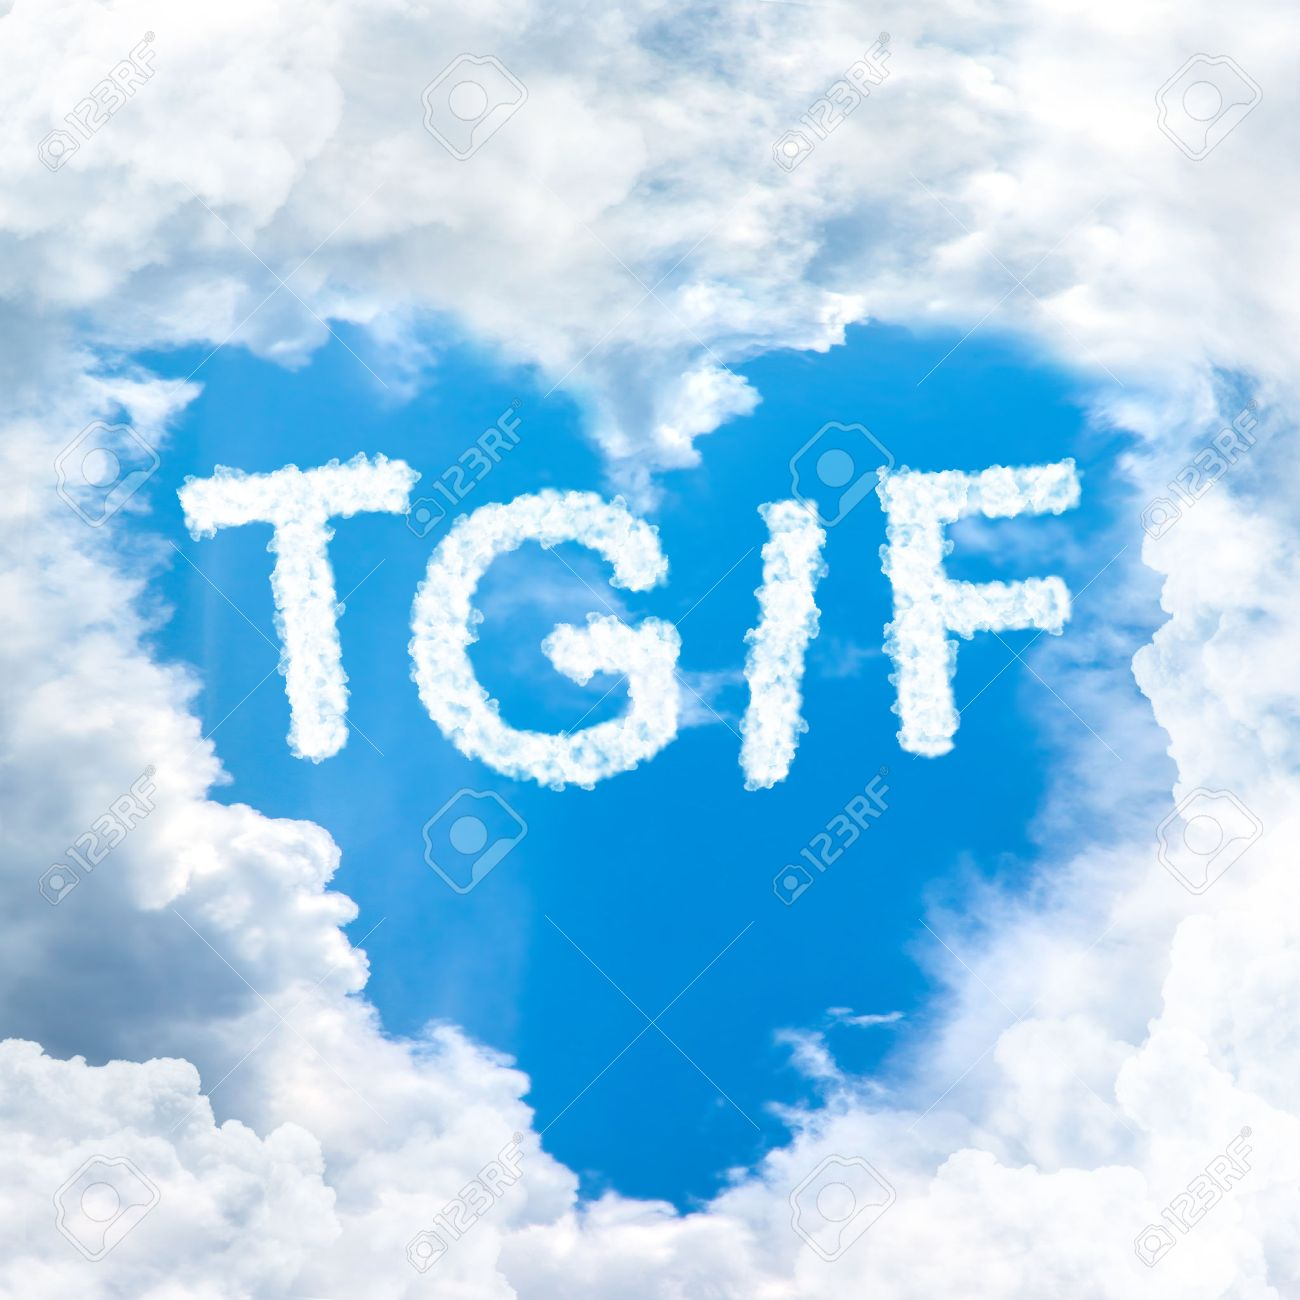 Stock Photo   TGIF Concept Friday Time Happy For Holiday Inside Blue Sky  Shape Heart From Cloud Frame